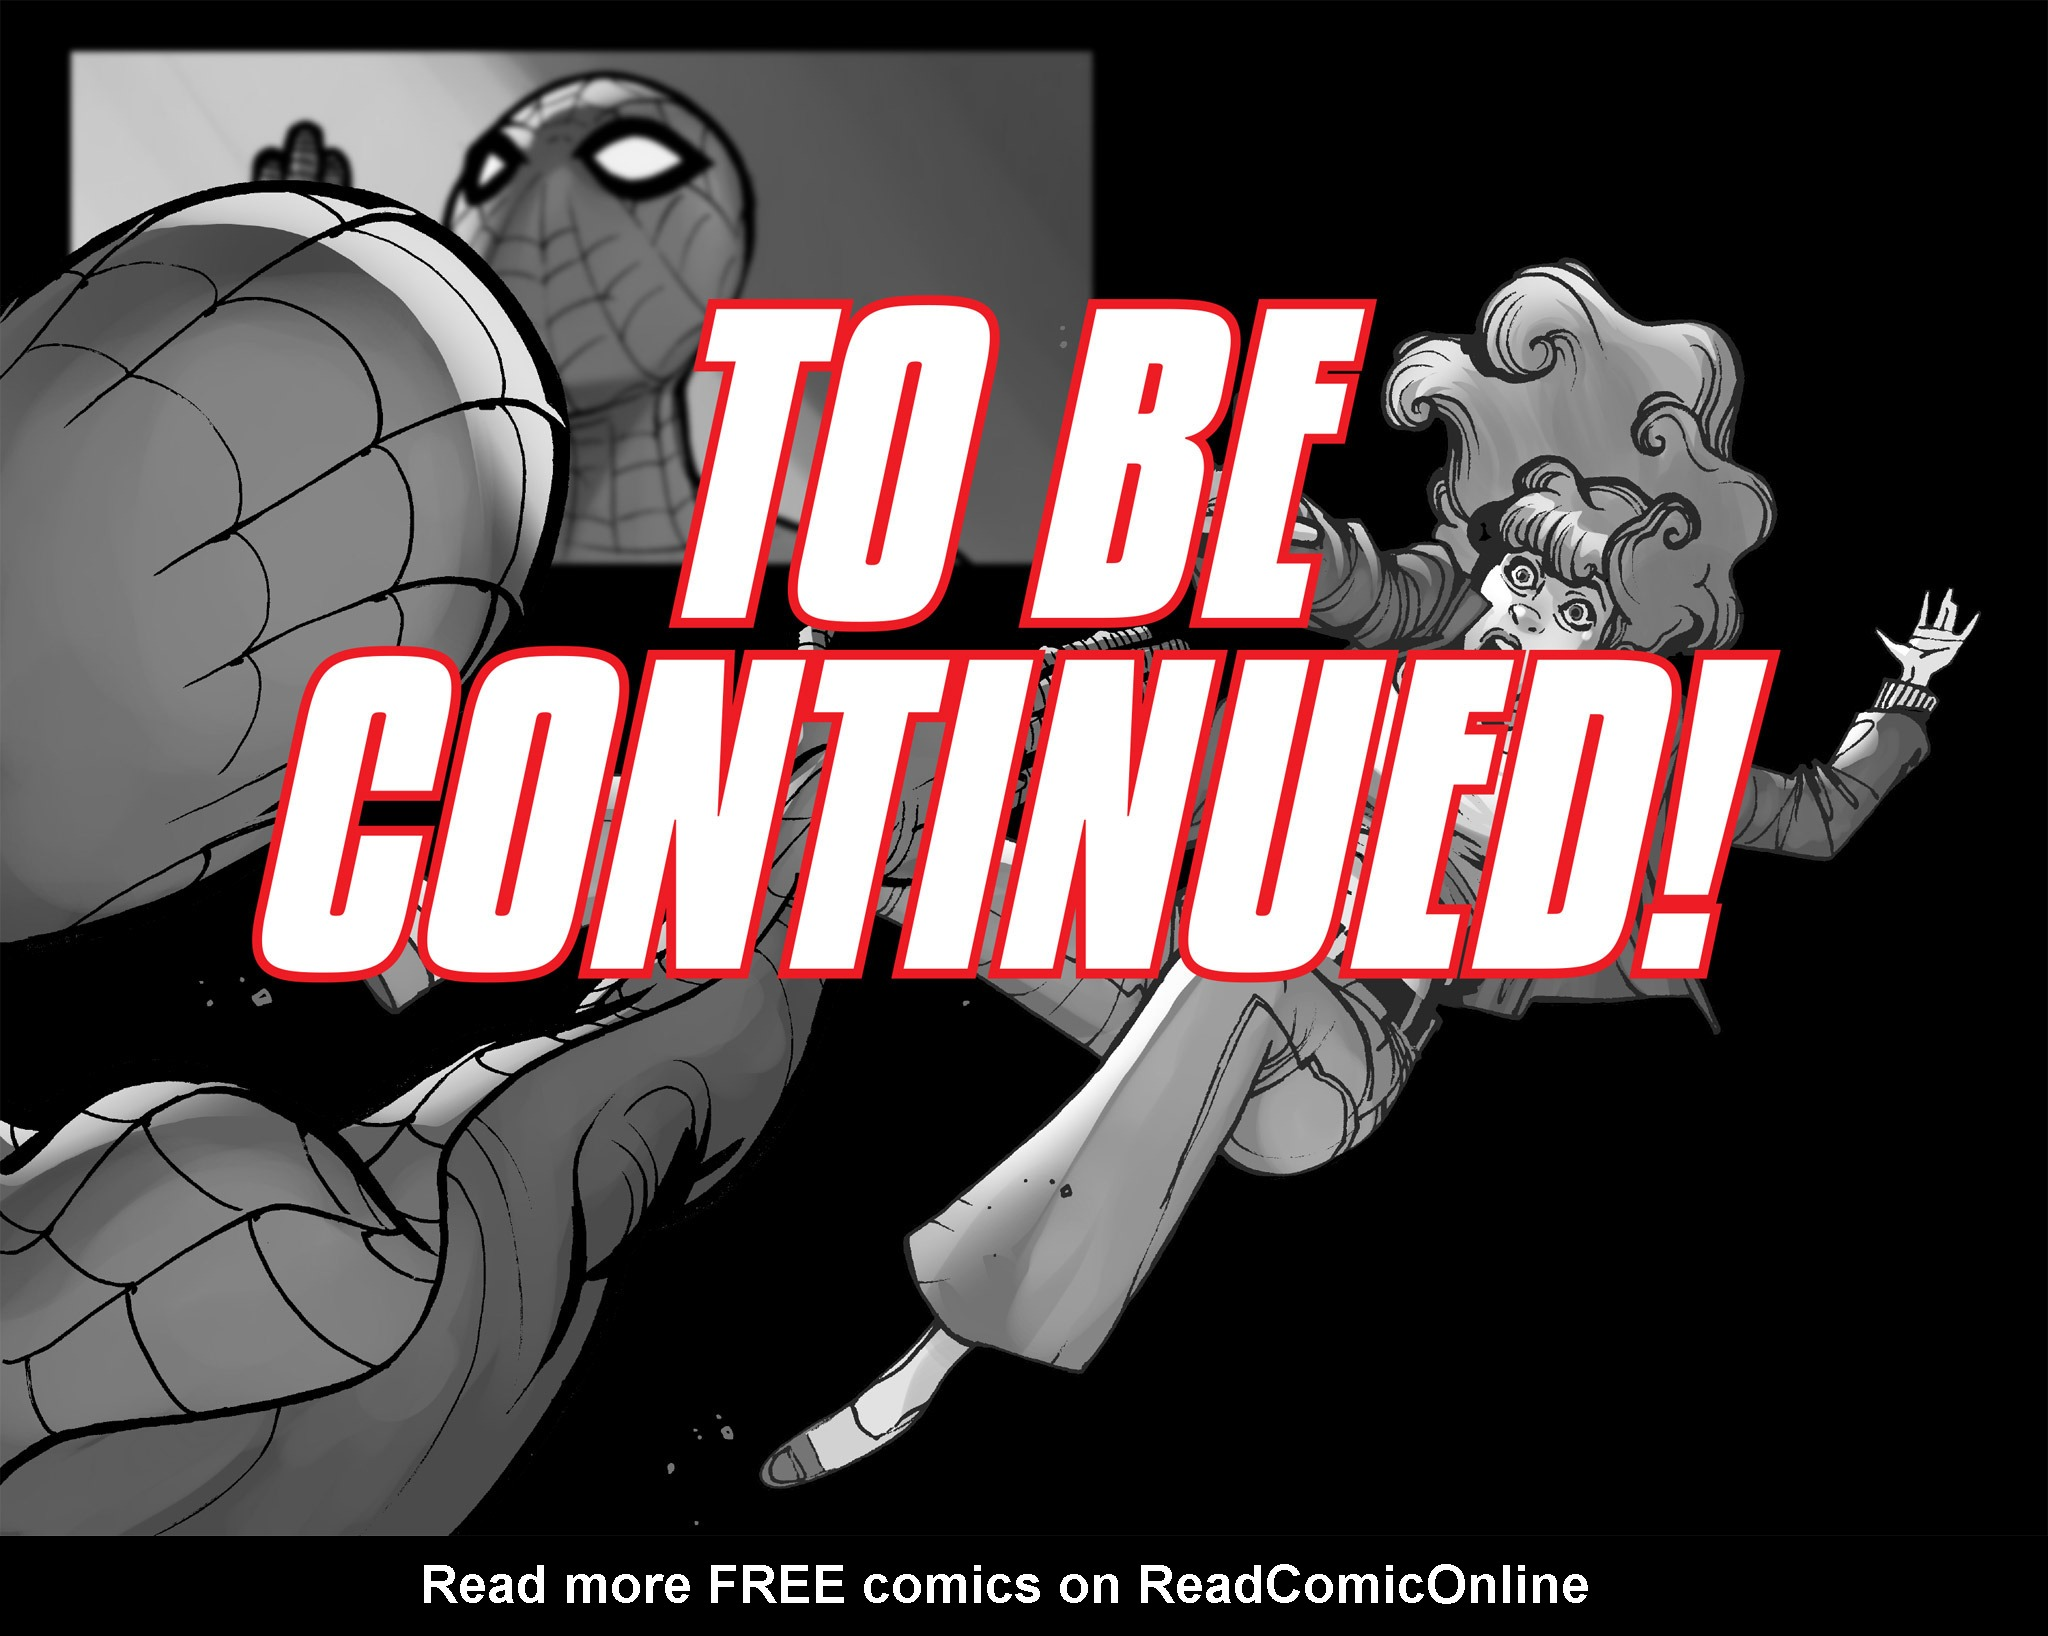 Read online Amazing Spider-Man: Who Am I? comic -  Issue # Full (Part 1) - 69